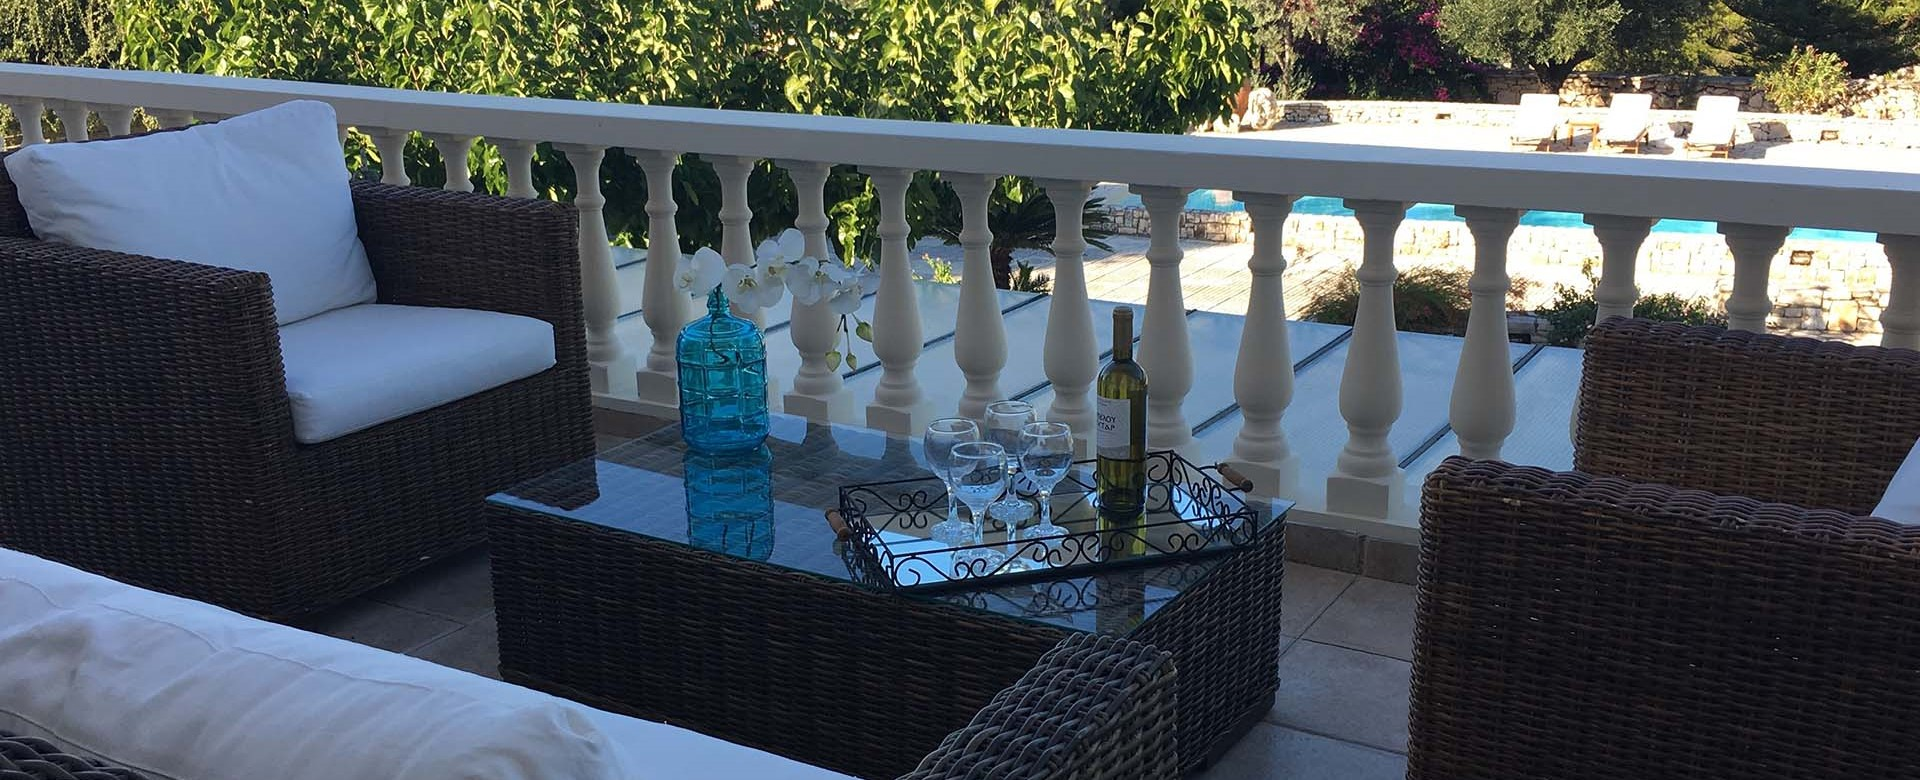 Comfortable private balcony seating outside Casa Angela, Melissani Apartments, Karavomilos, Kefalonia, Greek Islands